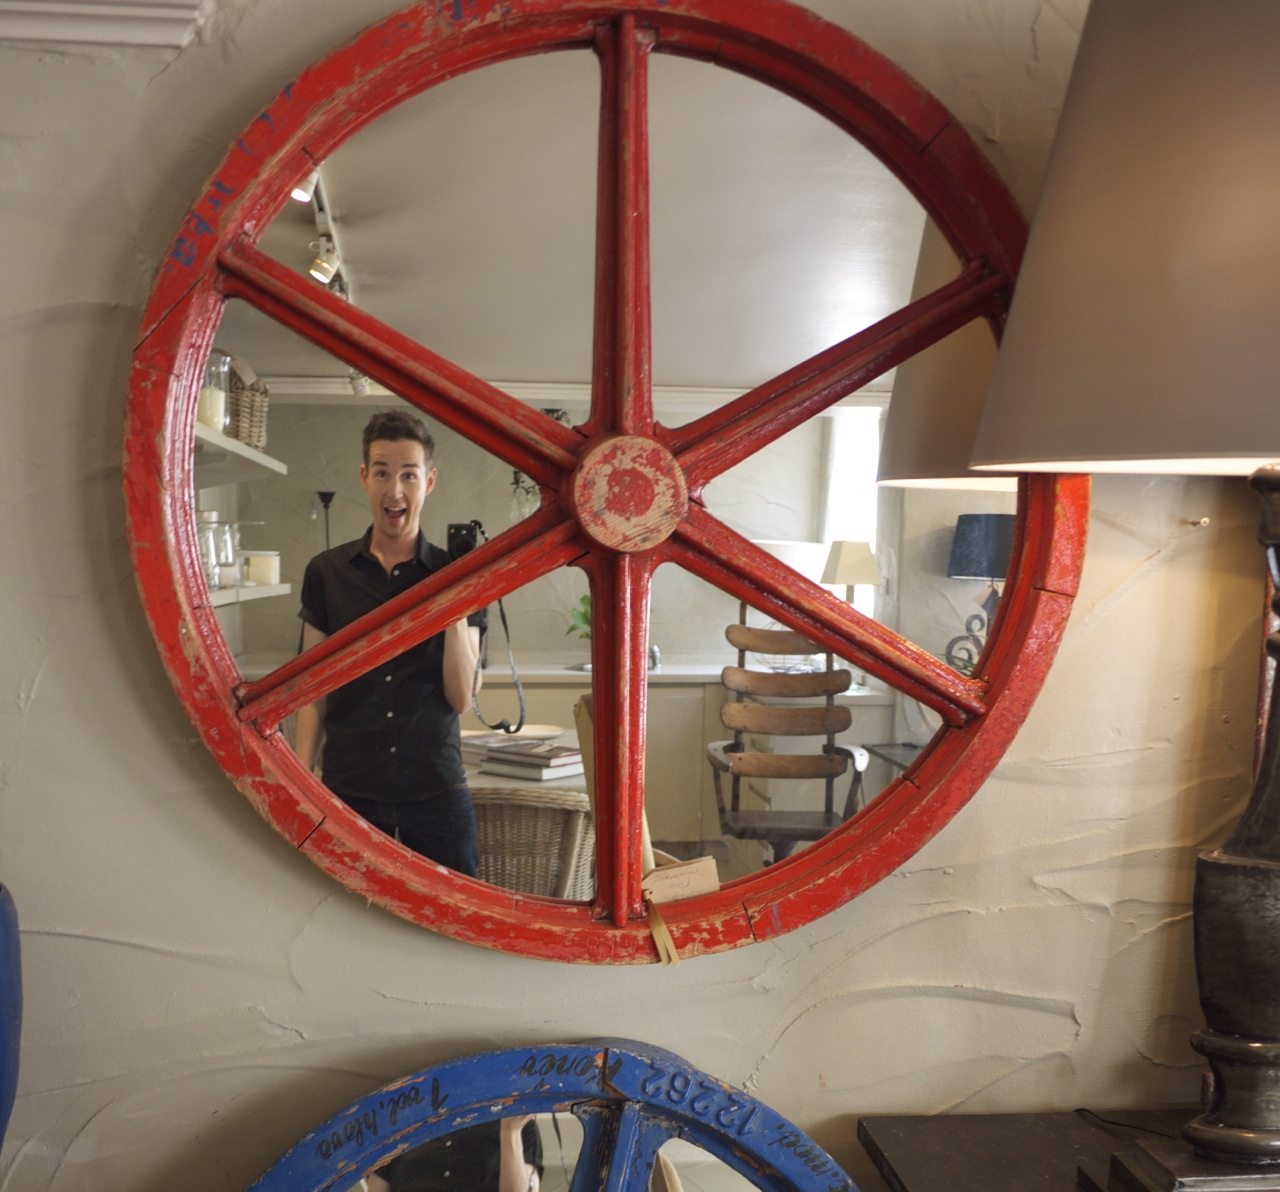 Parterre in Woollahra - Colourful Red Wheel Mirror